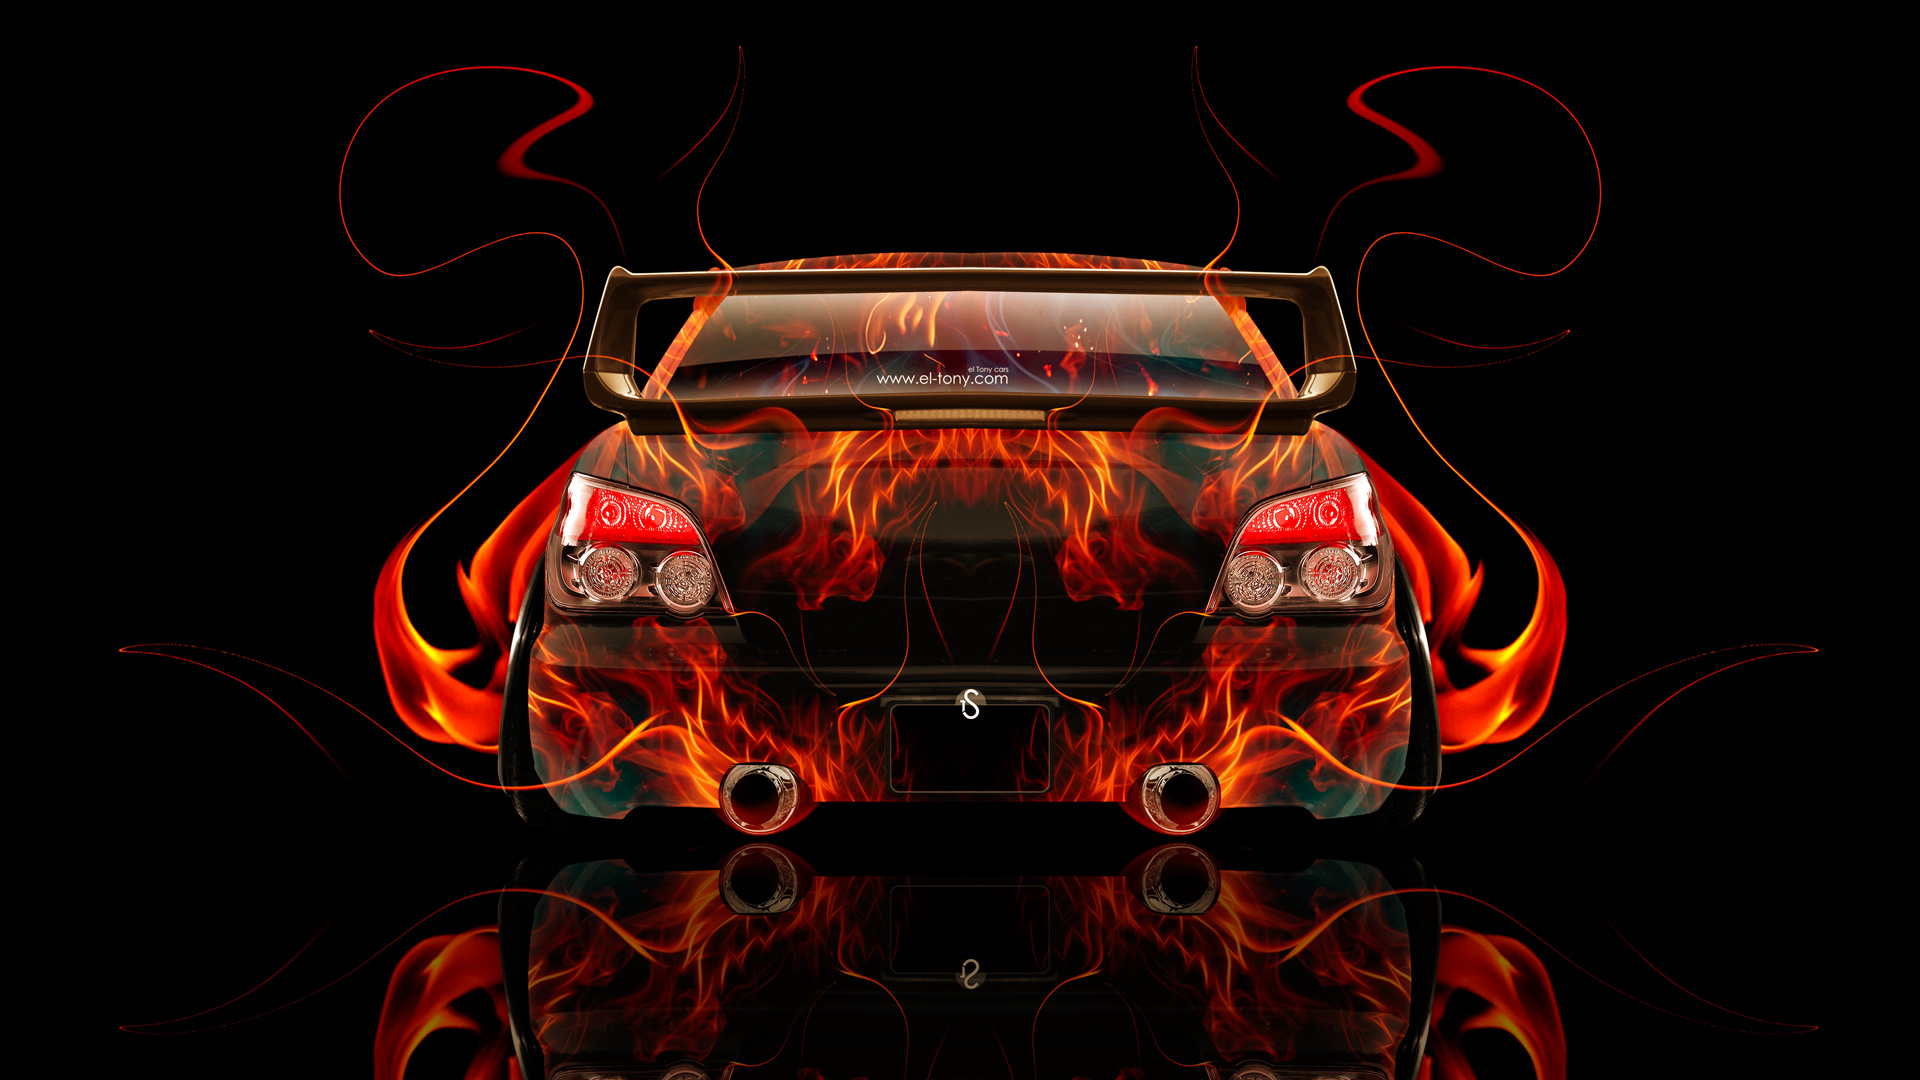 Subaru Impreza WRX STI JDM Back Fire Abstract